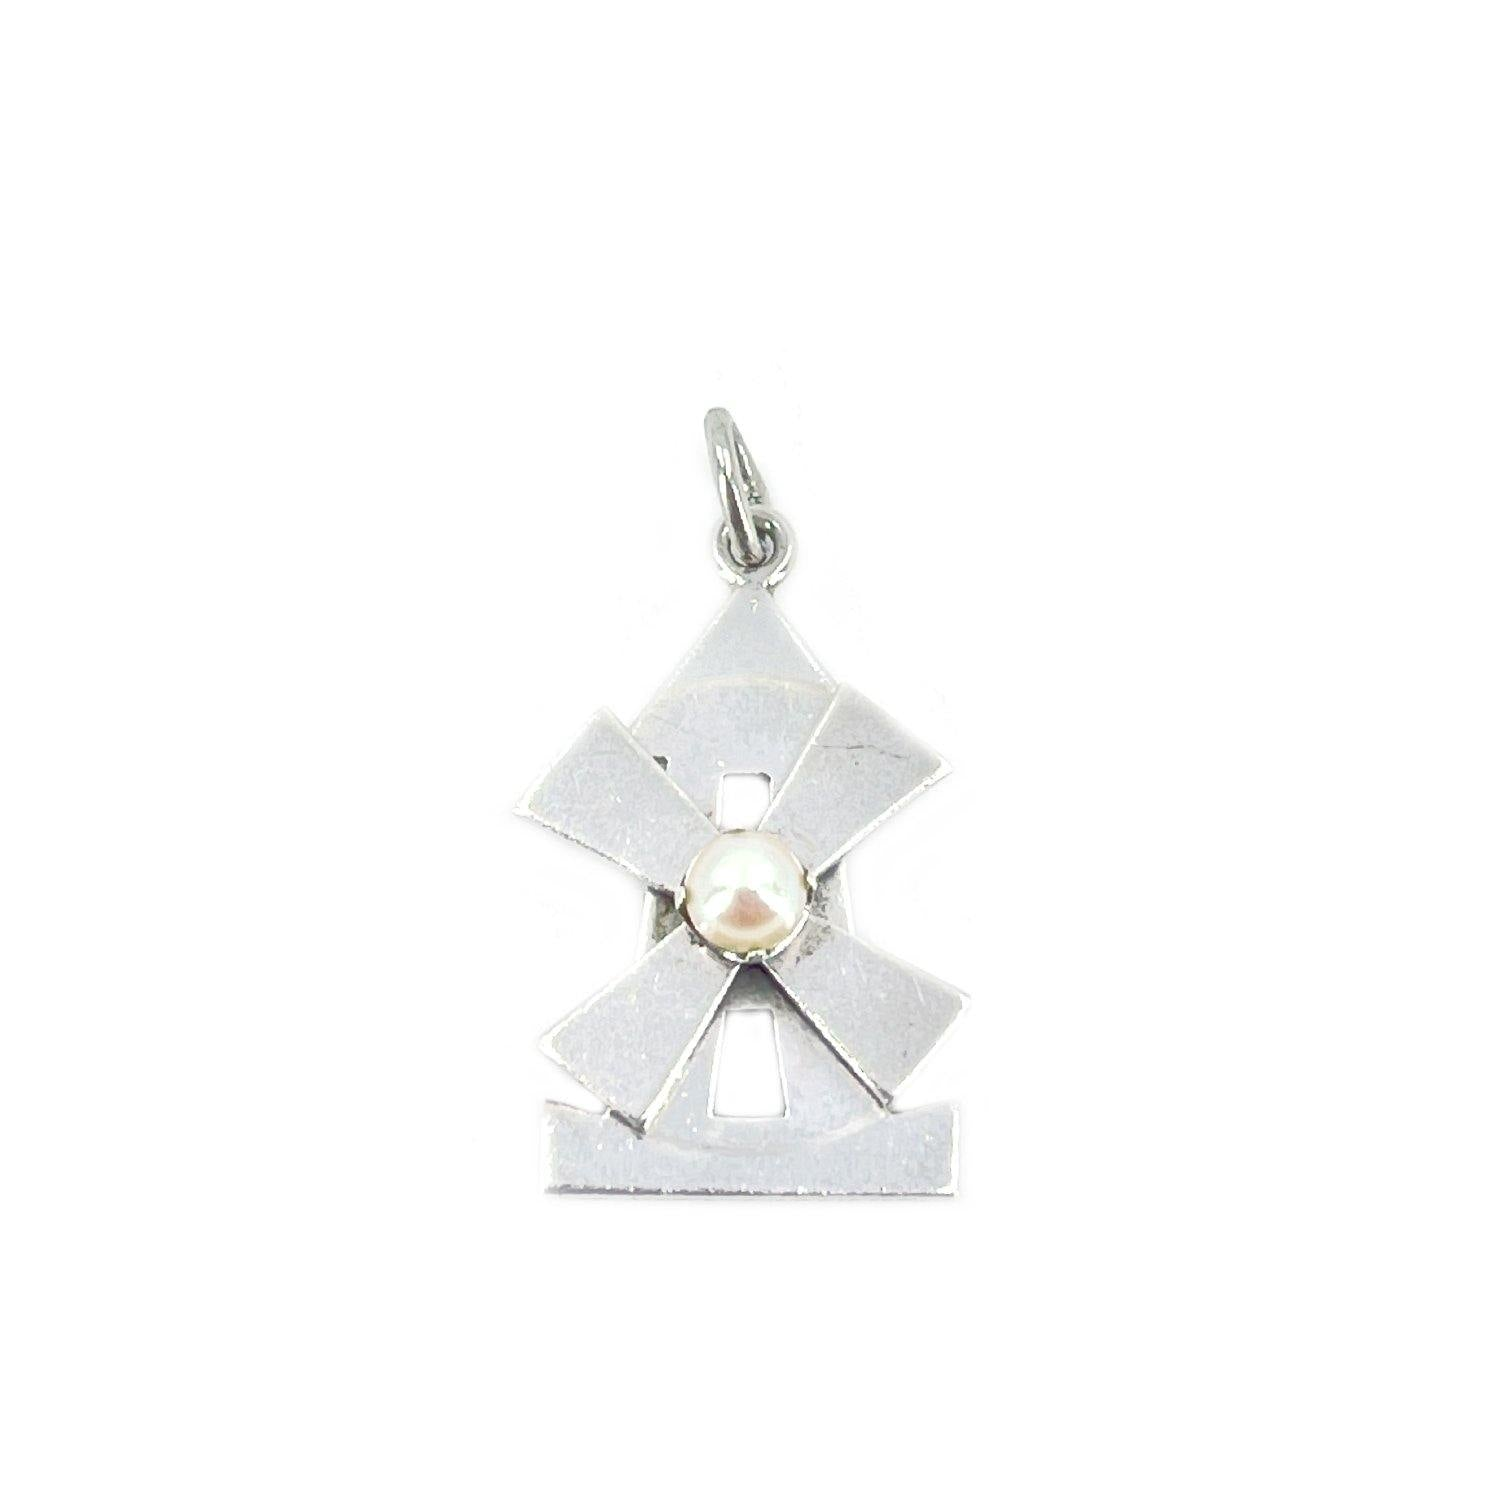 Windmill Japanese Saltwater Cultured Akoya Pearl Pendant Charm- Sterling Silver